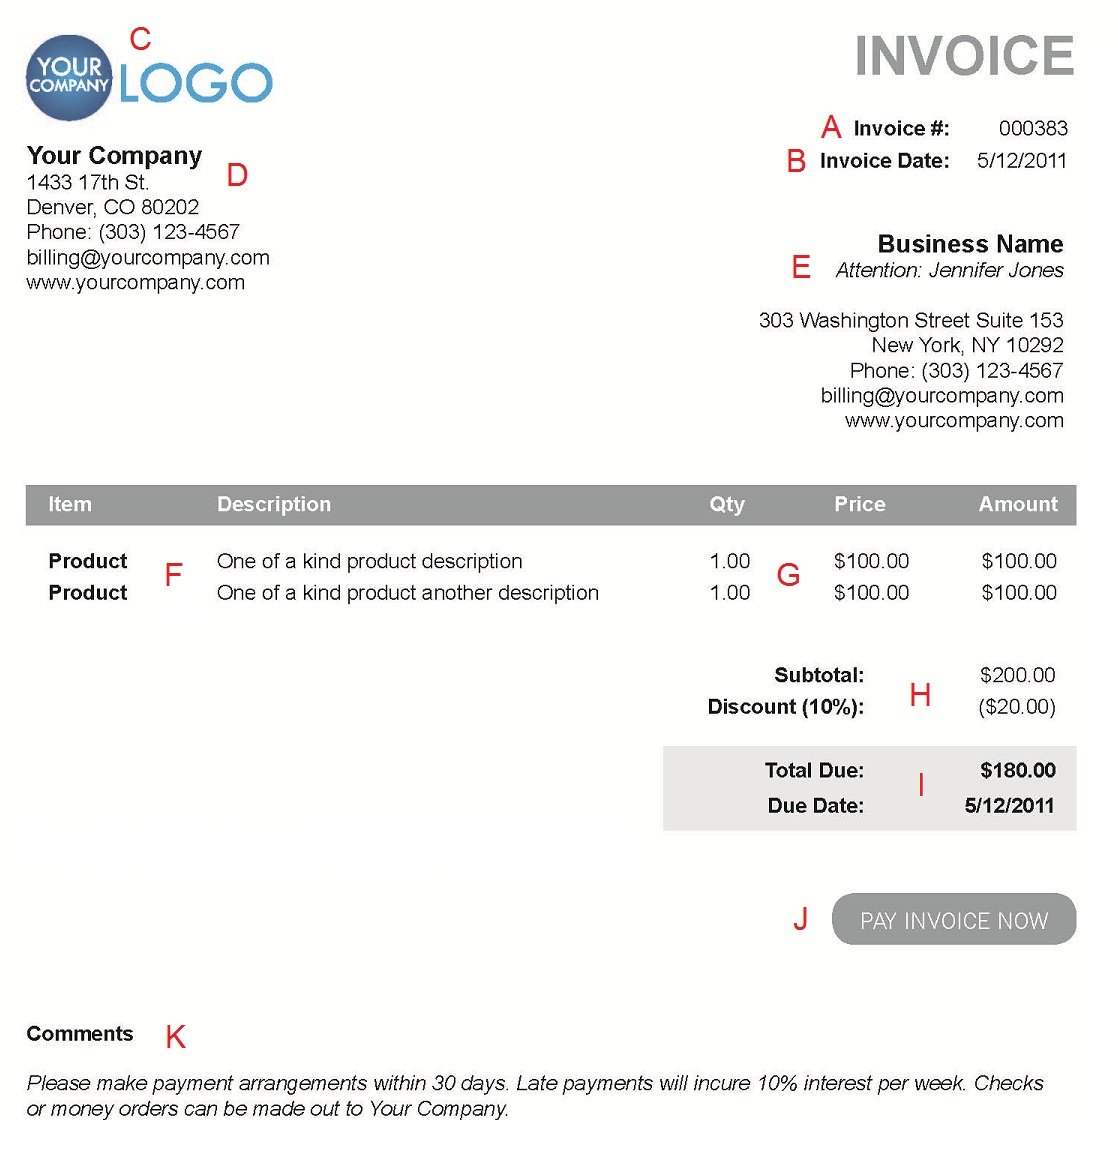 Coachoutletonlineplusus  Prepossessing The  Different Sections Of An Electronic Payment Invoice With Magnificent A  With Divine Pro Forma Invoice Sample Also Empty Invoice In Addition Templates For Invoice And Commercial Invoice Template Dhl As Well As Invoice Generation Software Additionally Late Invoice Payment From Paysimplecom With Coachoutletonlineplusus  Magnificent The  Different Sections Of An Electronic Payment Invoice With Divine A  And Prepossessing Pro Forma Invoice Sample Also Empty Invoice In Addition Templates For Invoice From Paysimplecom